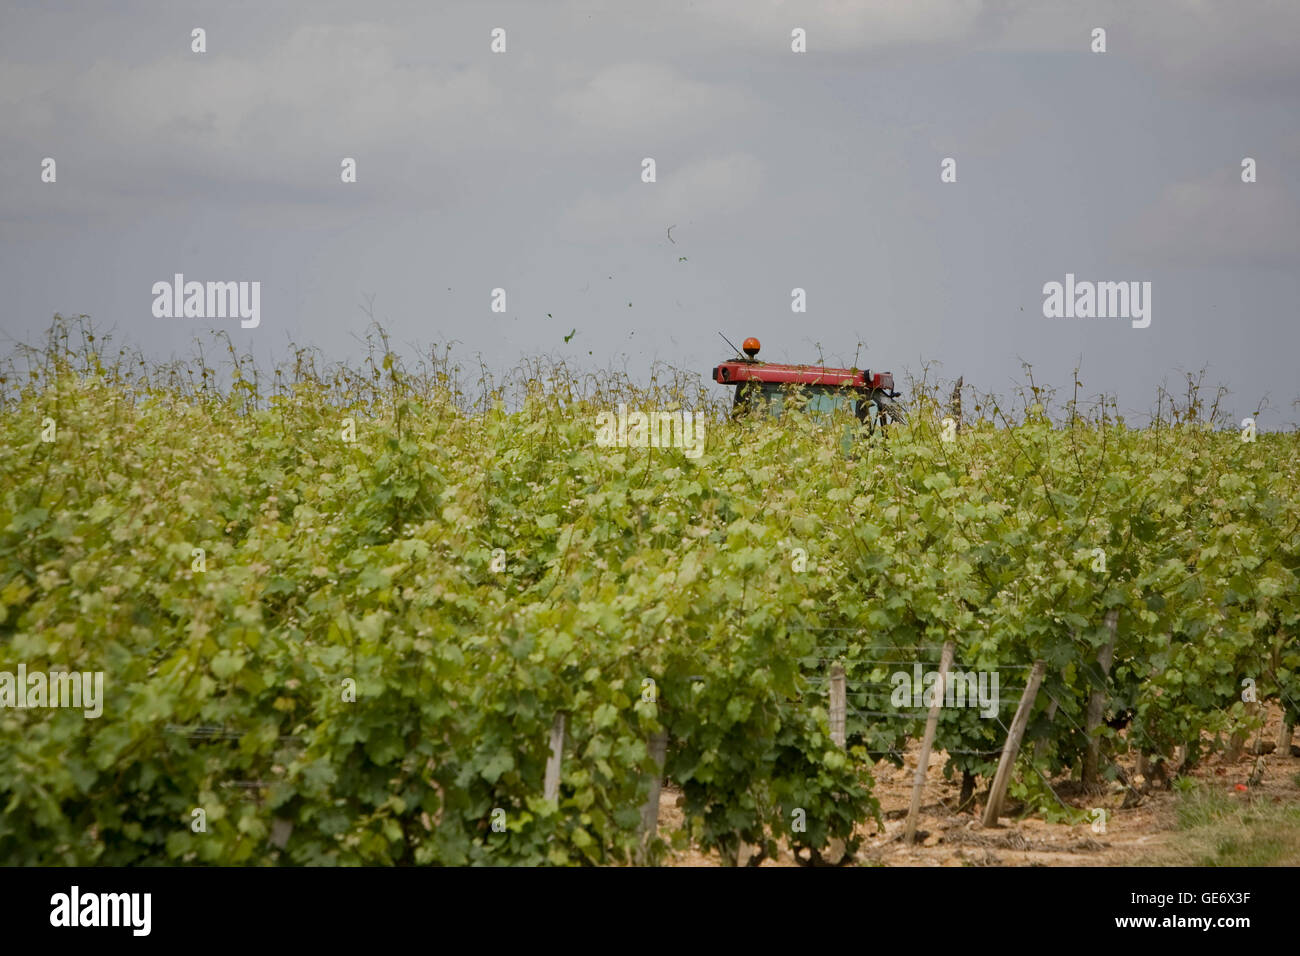 A farmer works on his tractor in a vineyard in Vouvray, France, 26 June 2008. - Stock Image